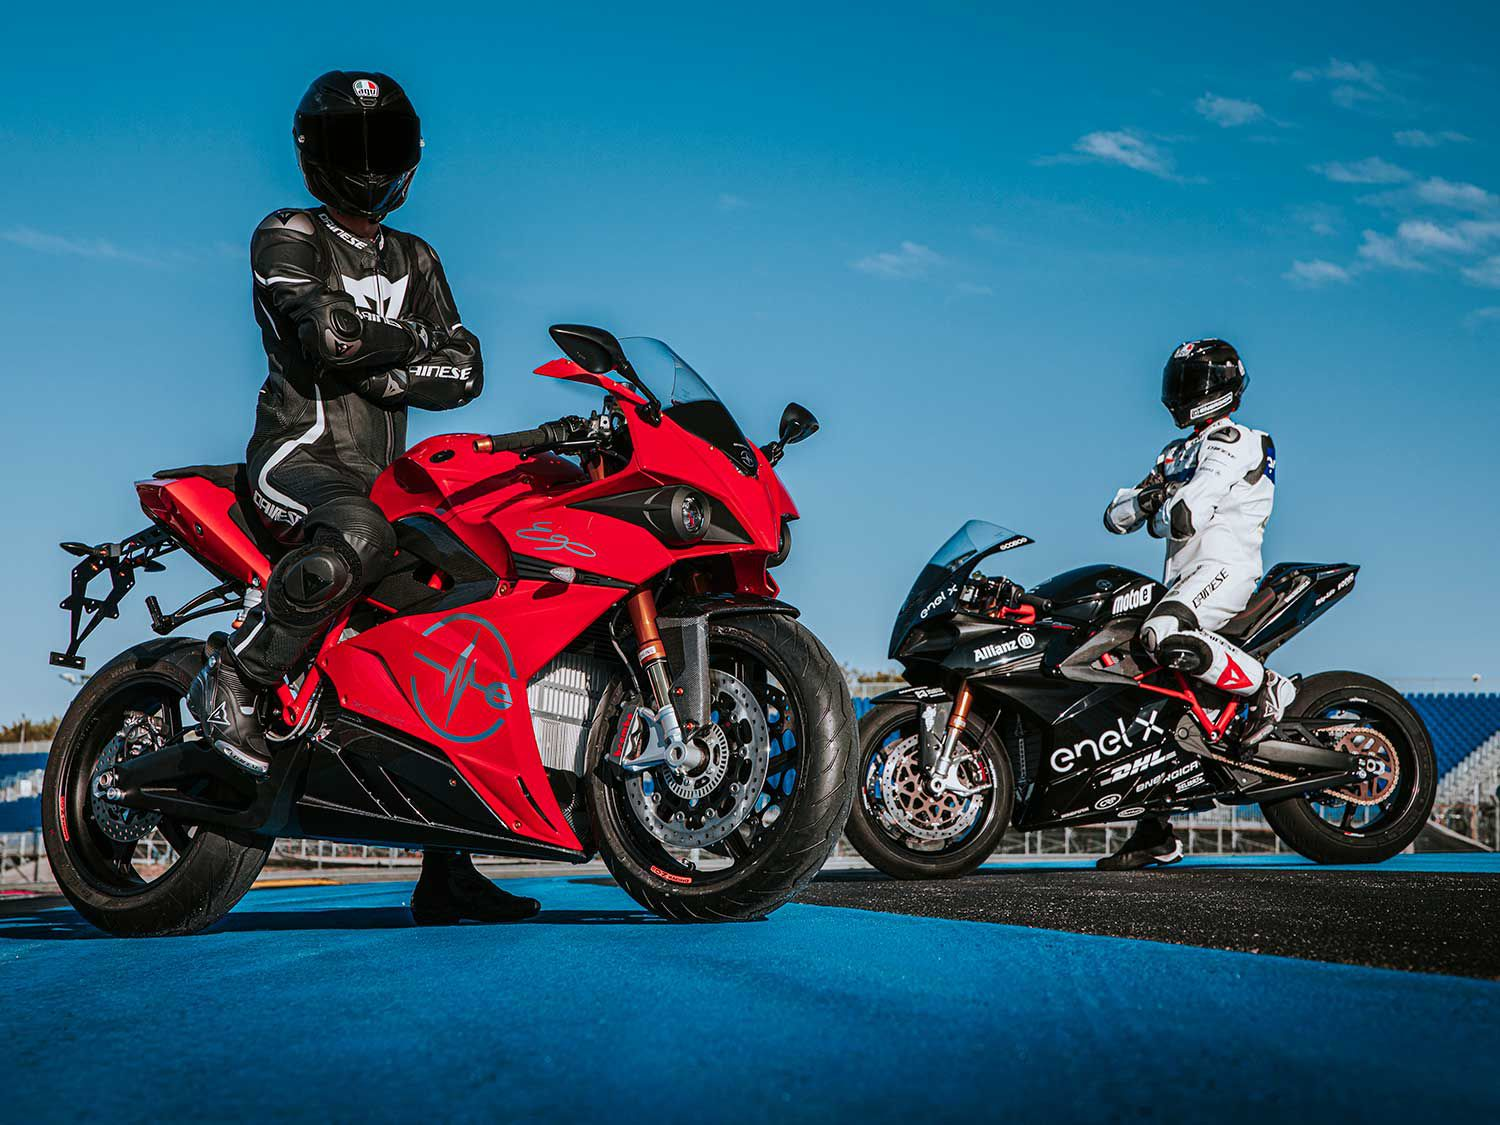 The Rosso Corsa red version of the 2020 Energica Ego+ has the sportiest look of the three color options, but the Ego Sport Black version pays homage to the MotoE Energica Corsa livery.